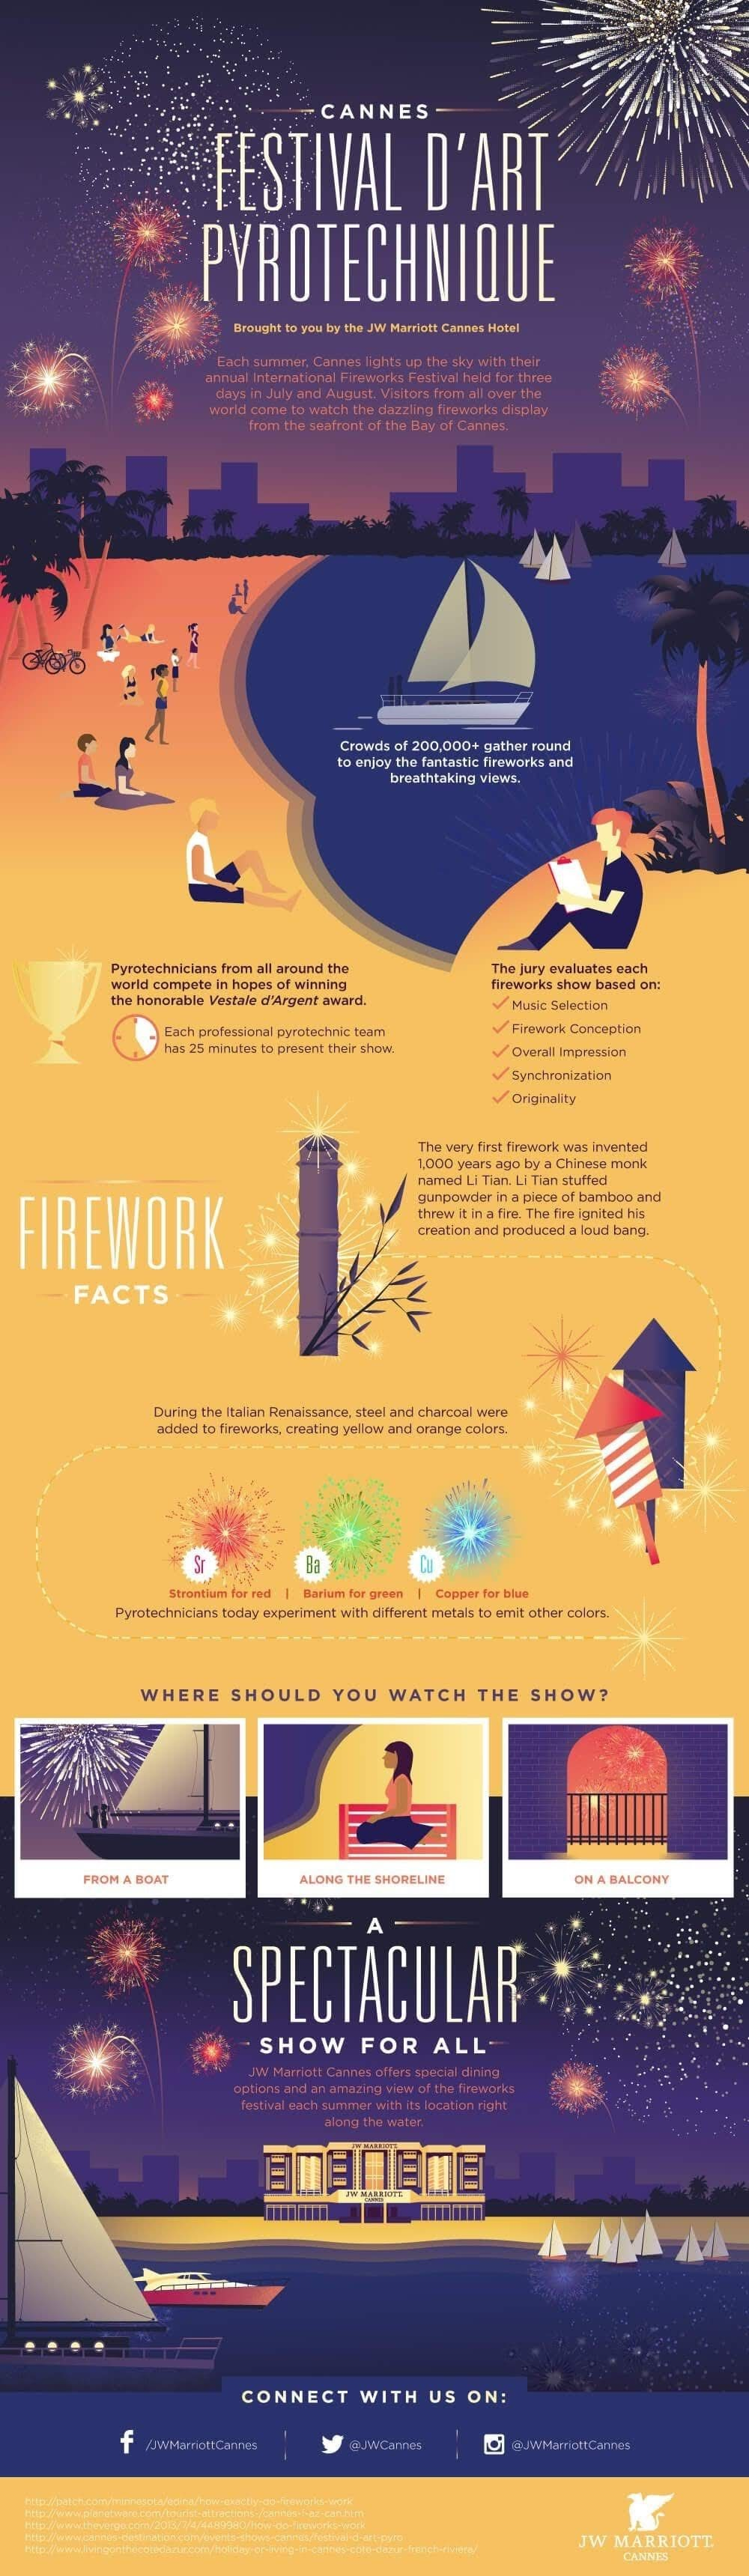 Cannes from the Pyrotechnic Festival #infographic